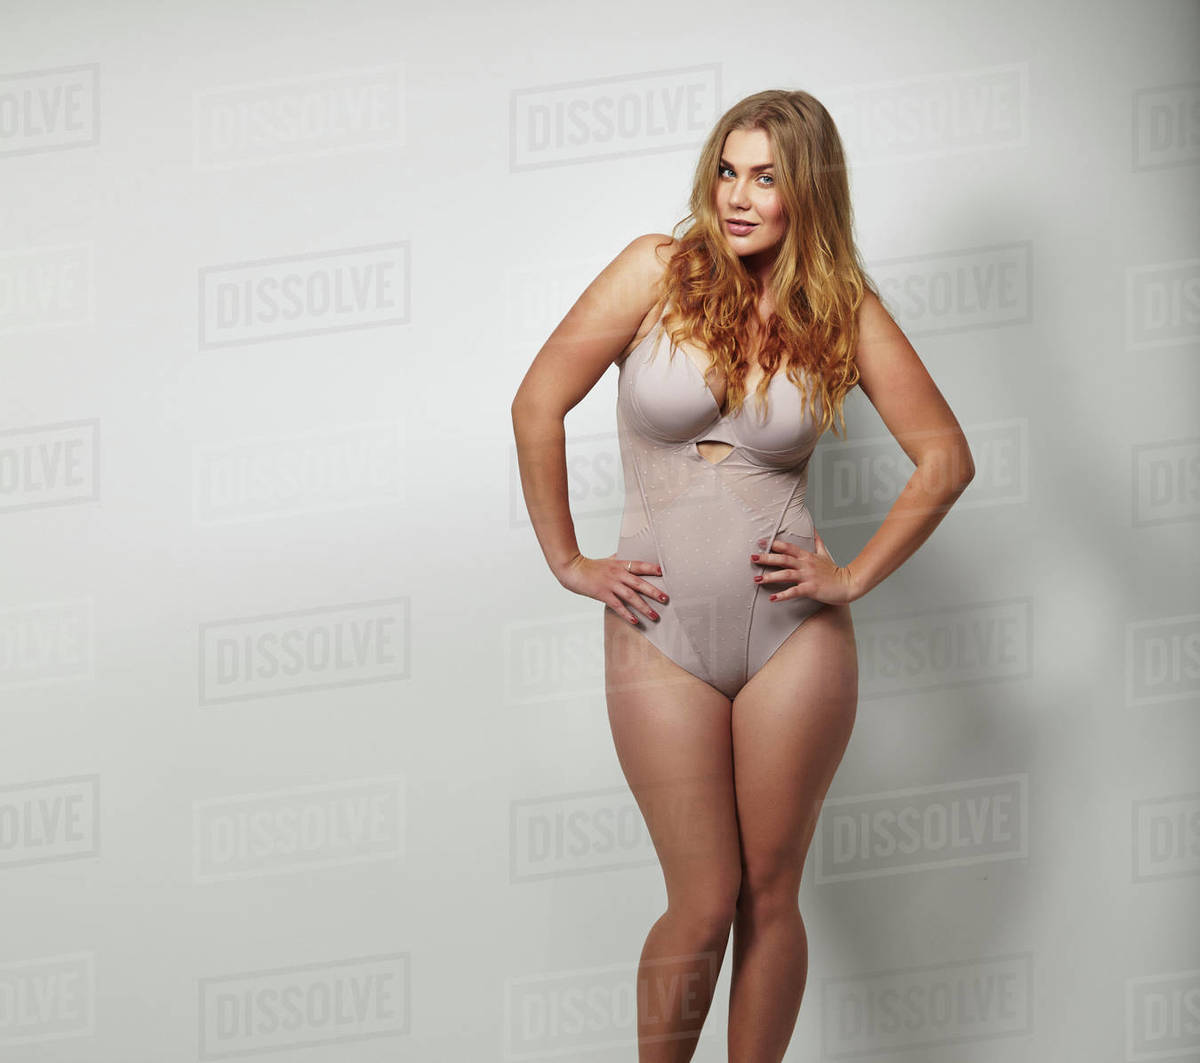 582f448f7cb Chubby young woman in body stockings standing on grey background with her  hands on hips looking at camera. Caucasian plus size female model in  lingerie with ...